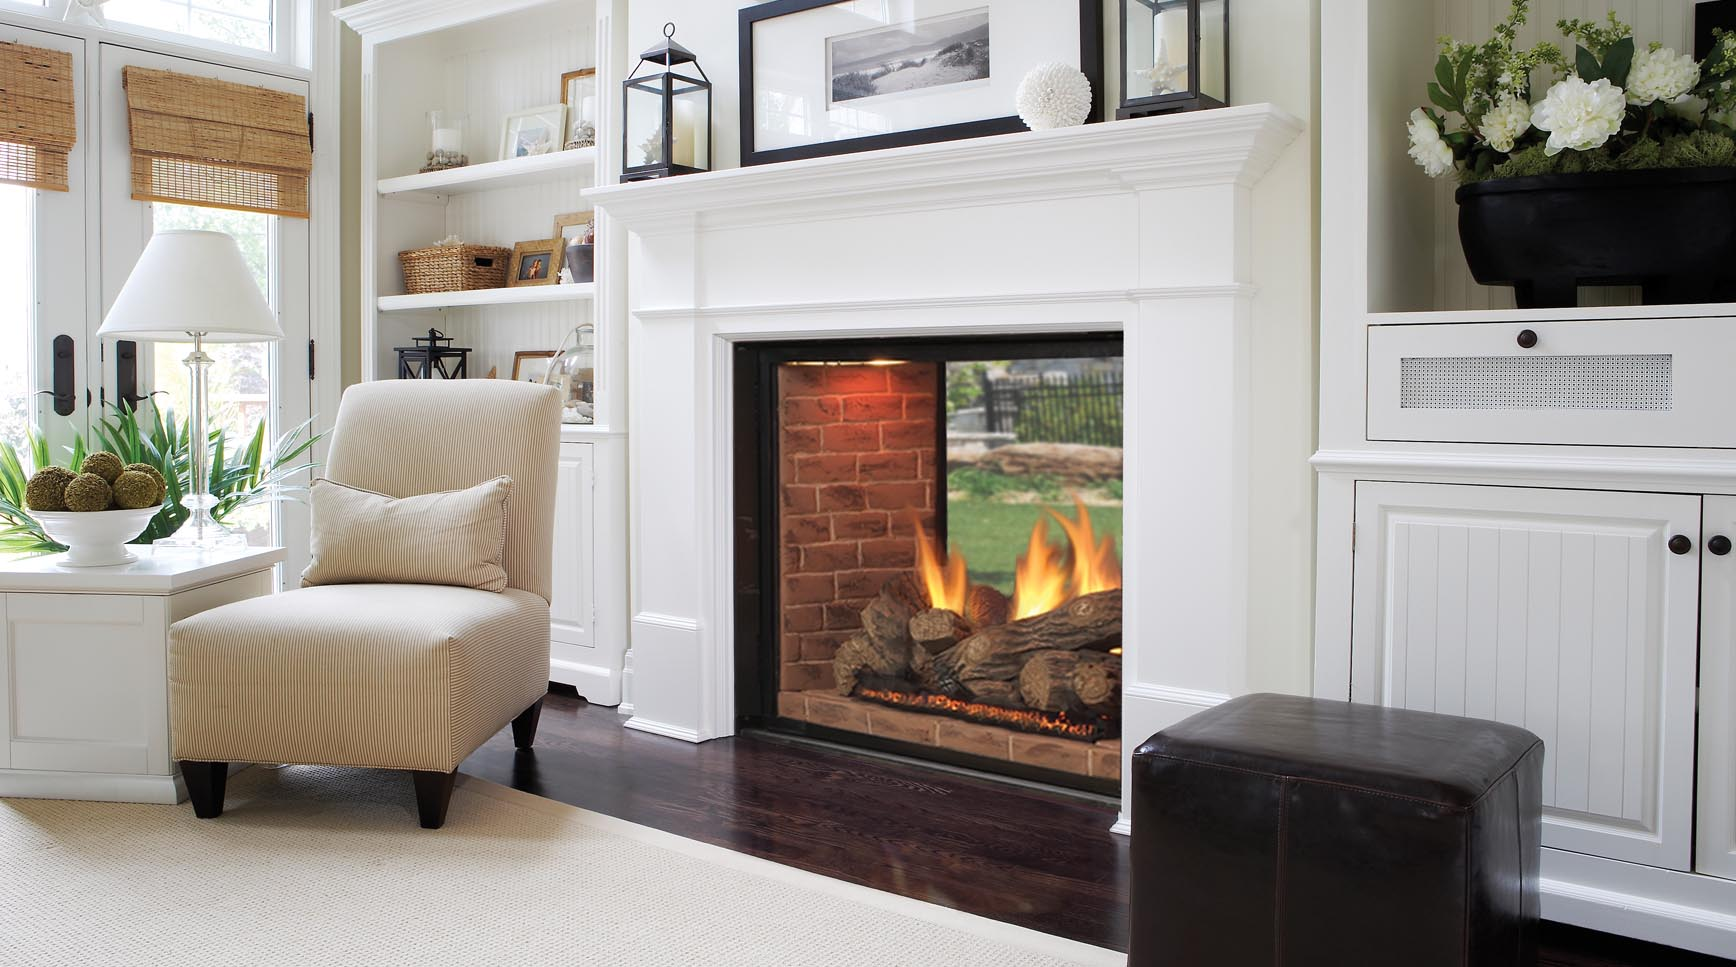 Important Facts about Indoor Outdoor Fireplace : Indoor Outdoor Fireplace Gas. Indoor outdoor fireplace gas. outdoor